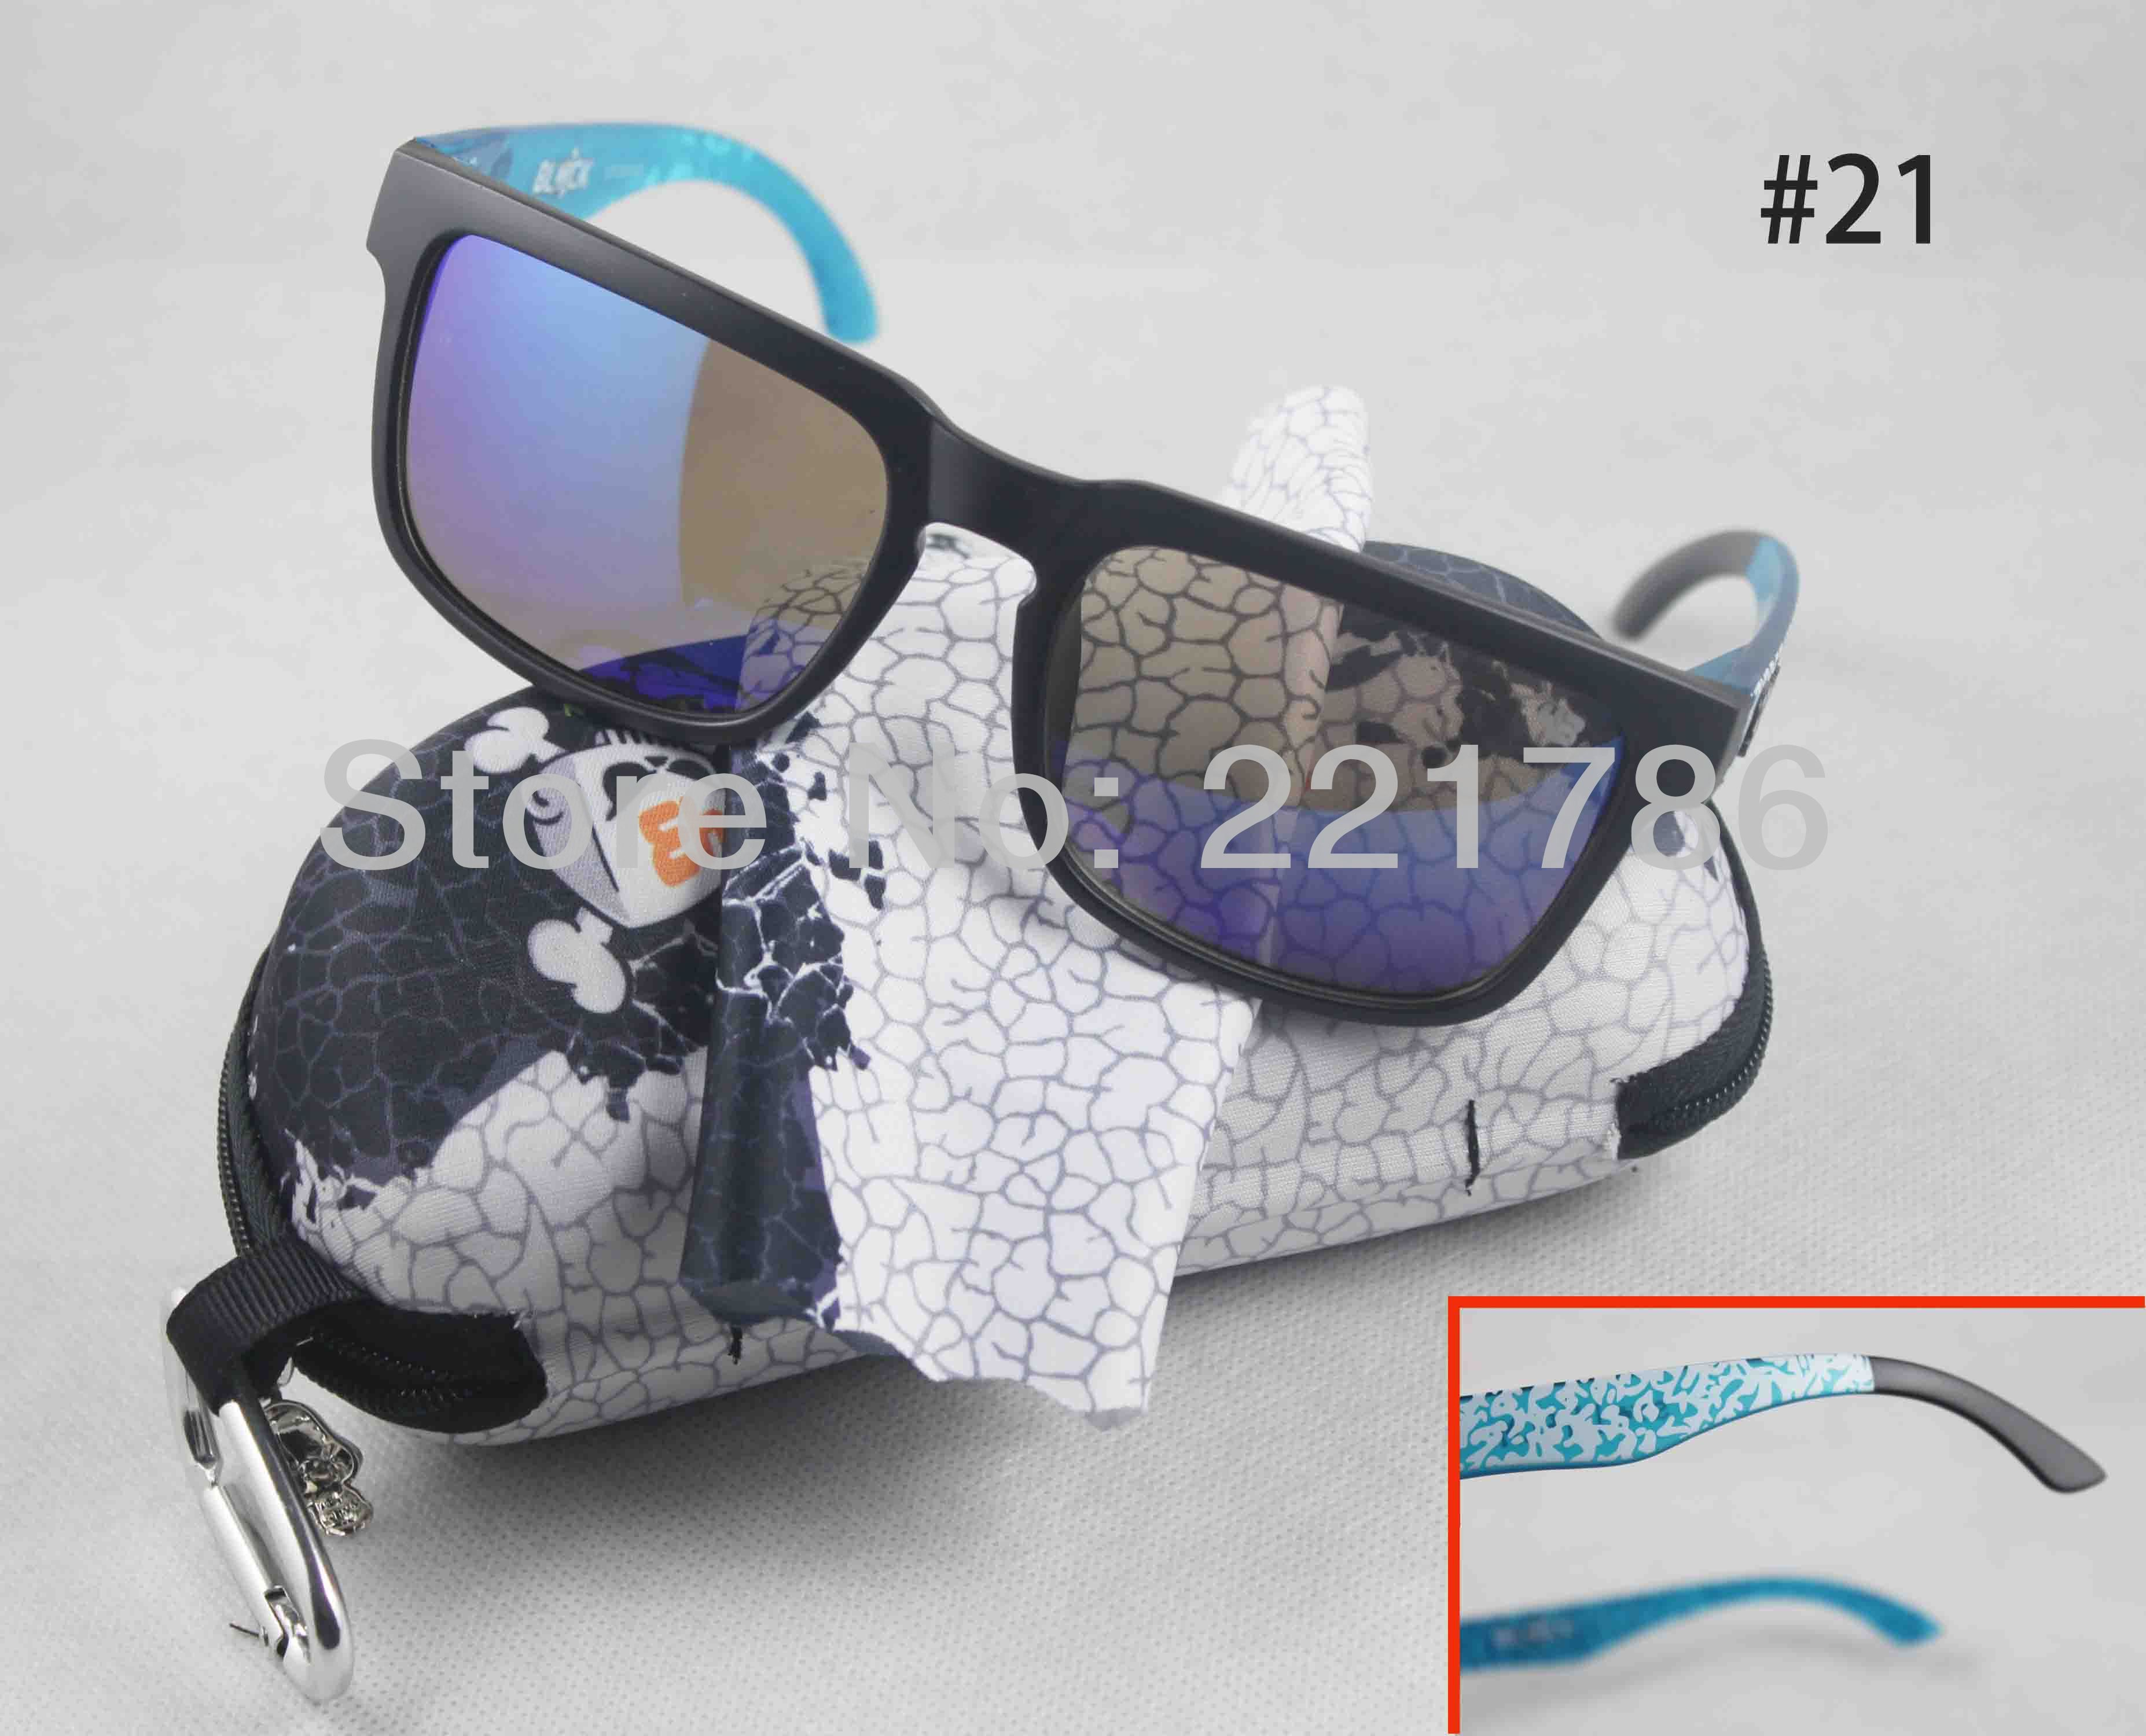 2014 hot New Sunglasses Cycling Sports Sun glasses Eyeglasses 21 colors can choose (06-21) with case 15%off 6.75$